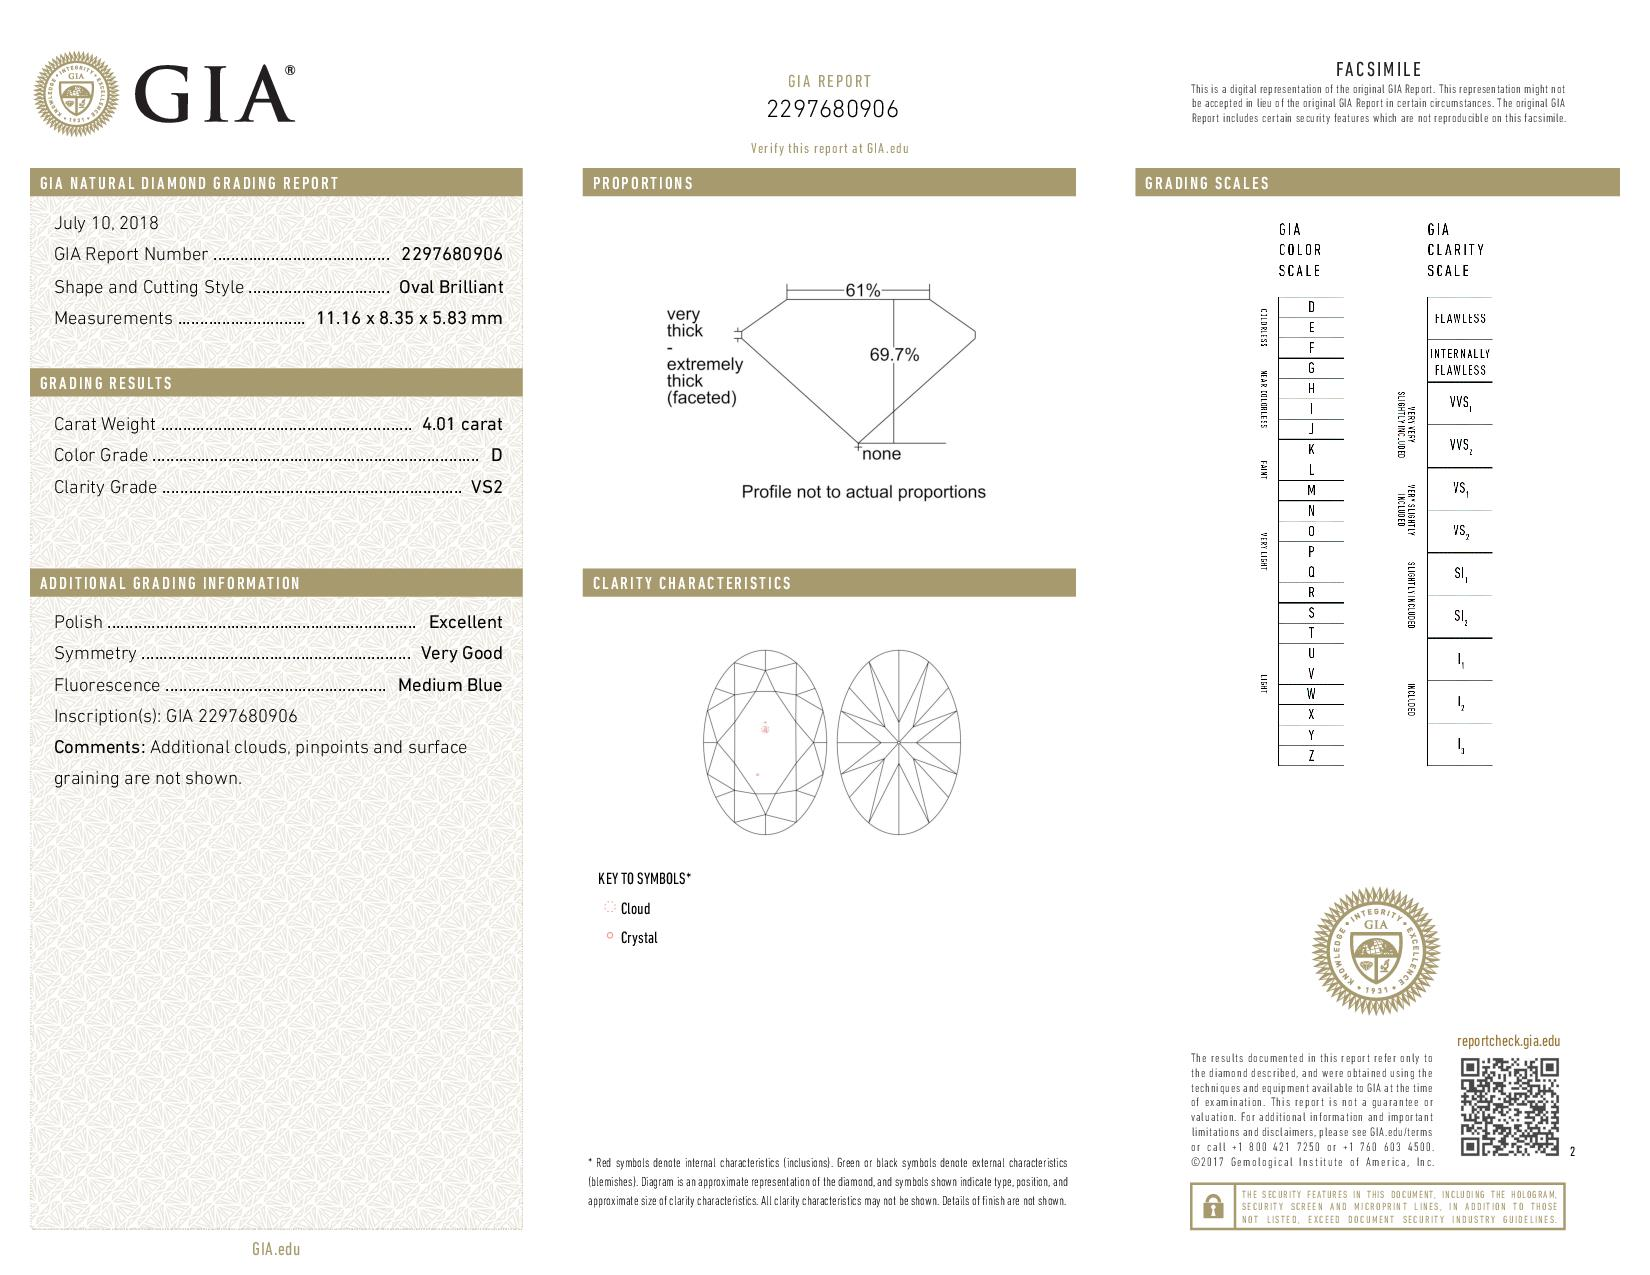 This is a 4.01 carat oval shape, D color, VS2 clarity natural diamond accompanied by a GIA grading report.